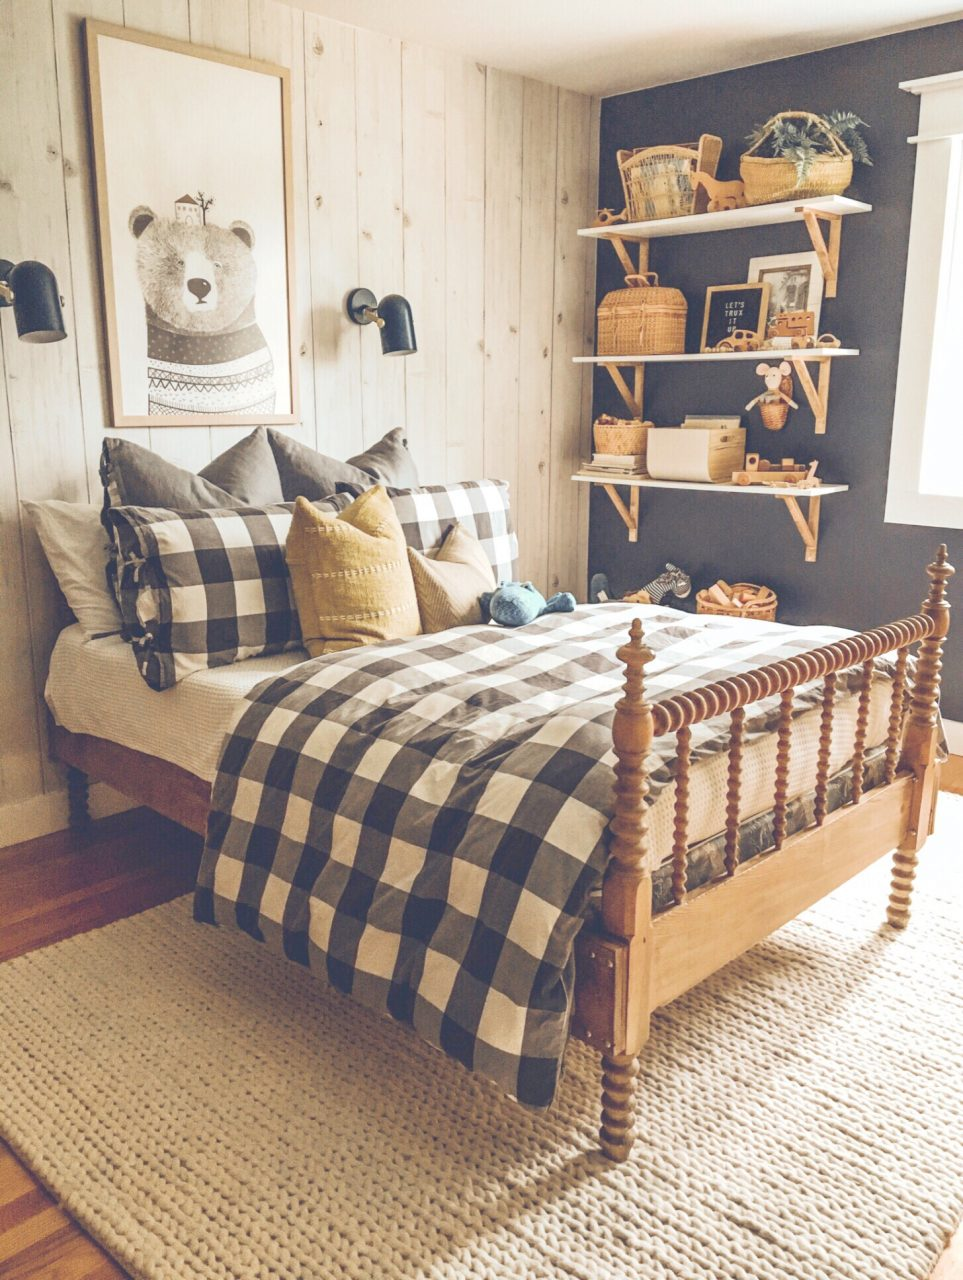 plaid bedspread with large wall art